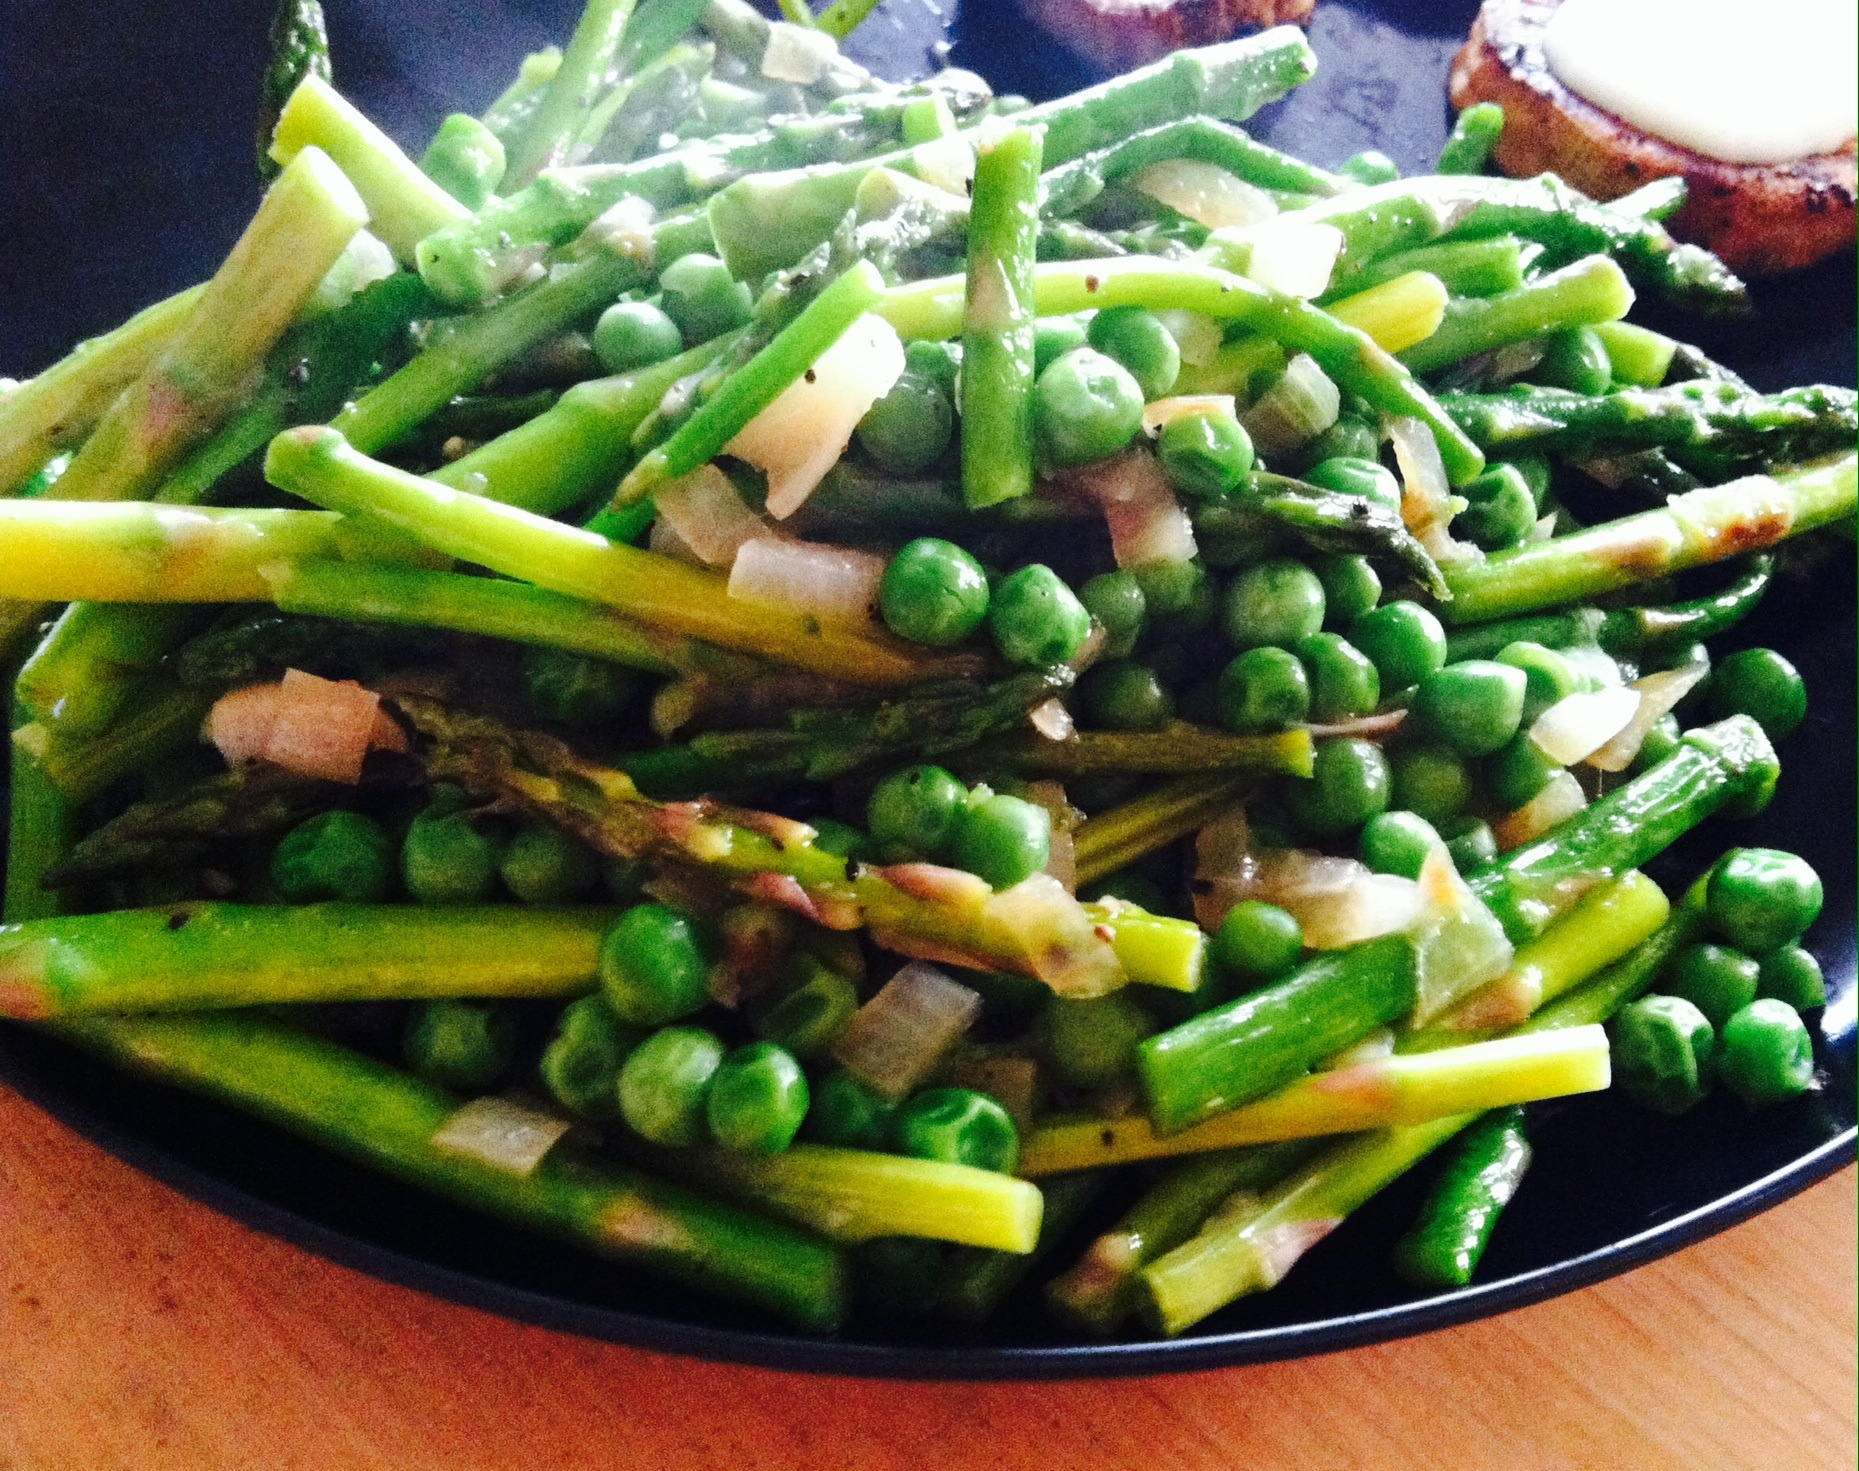 Sauteed Asparagus and Peas | xtinaluvspink.wordpress.com